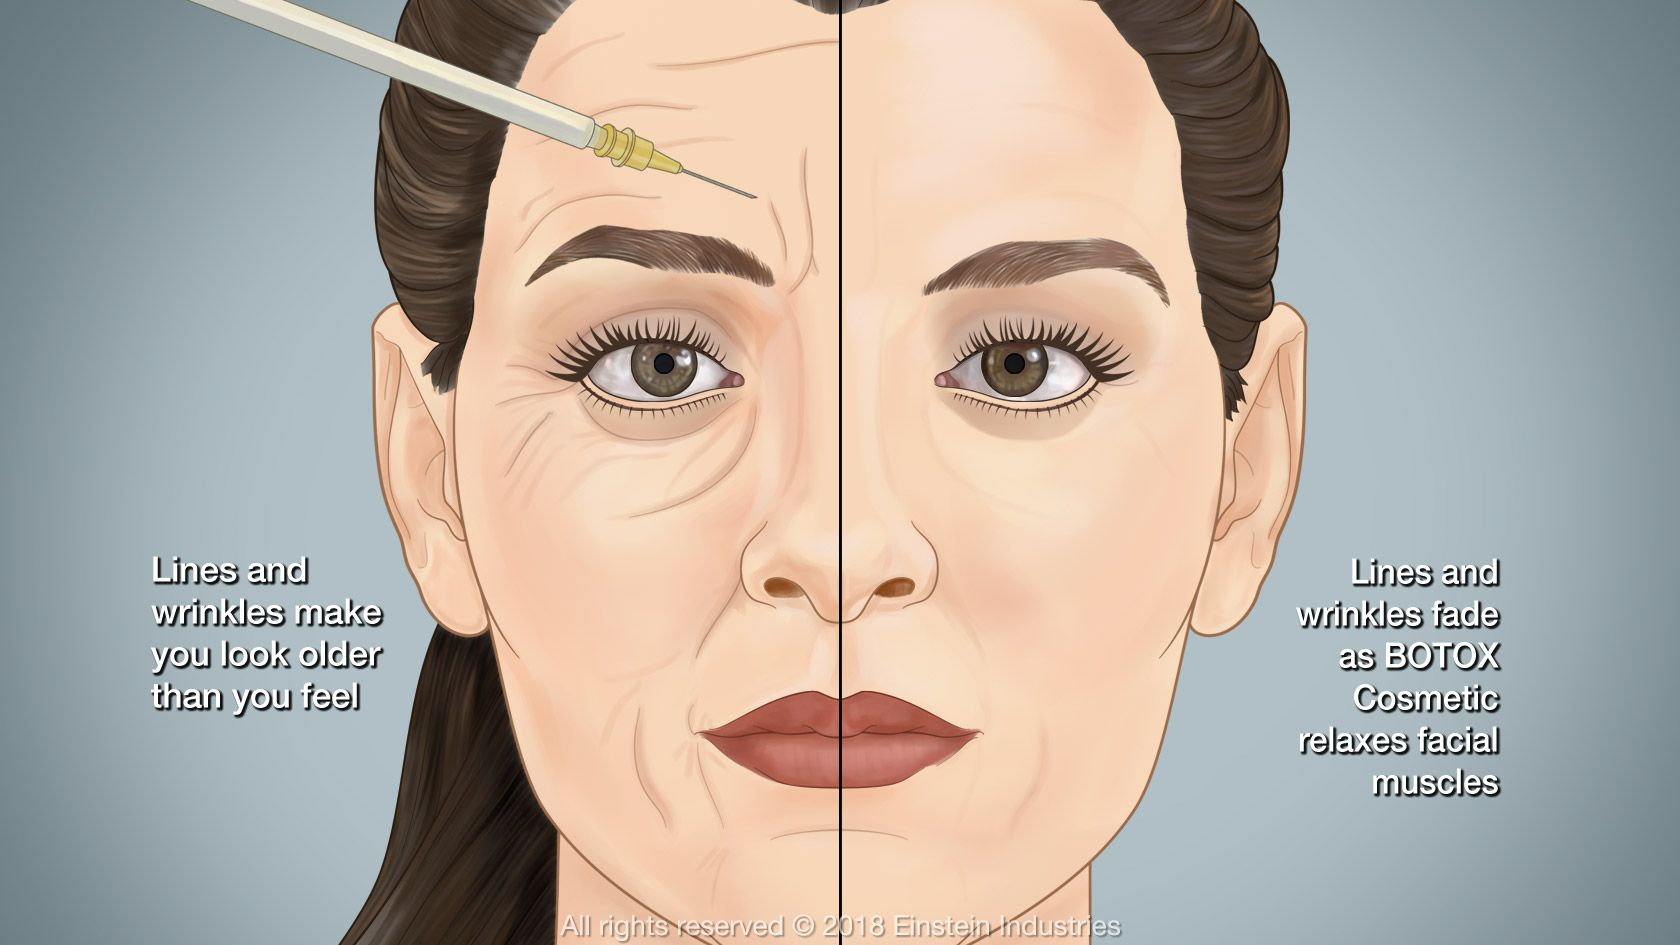 Illustration of before and after BOTOX treatment